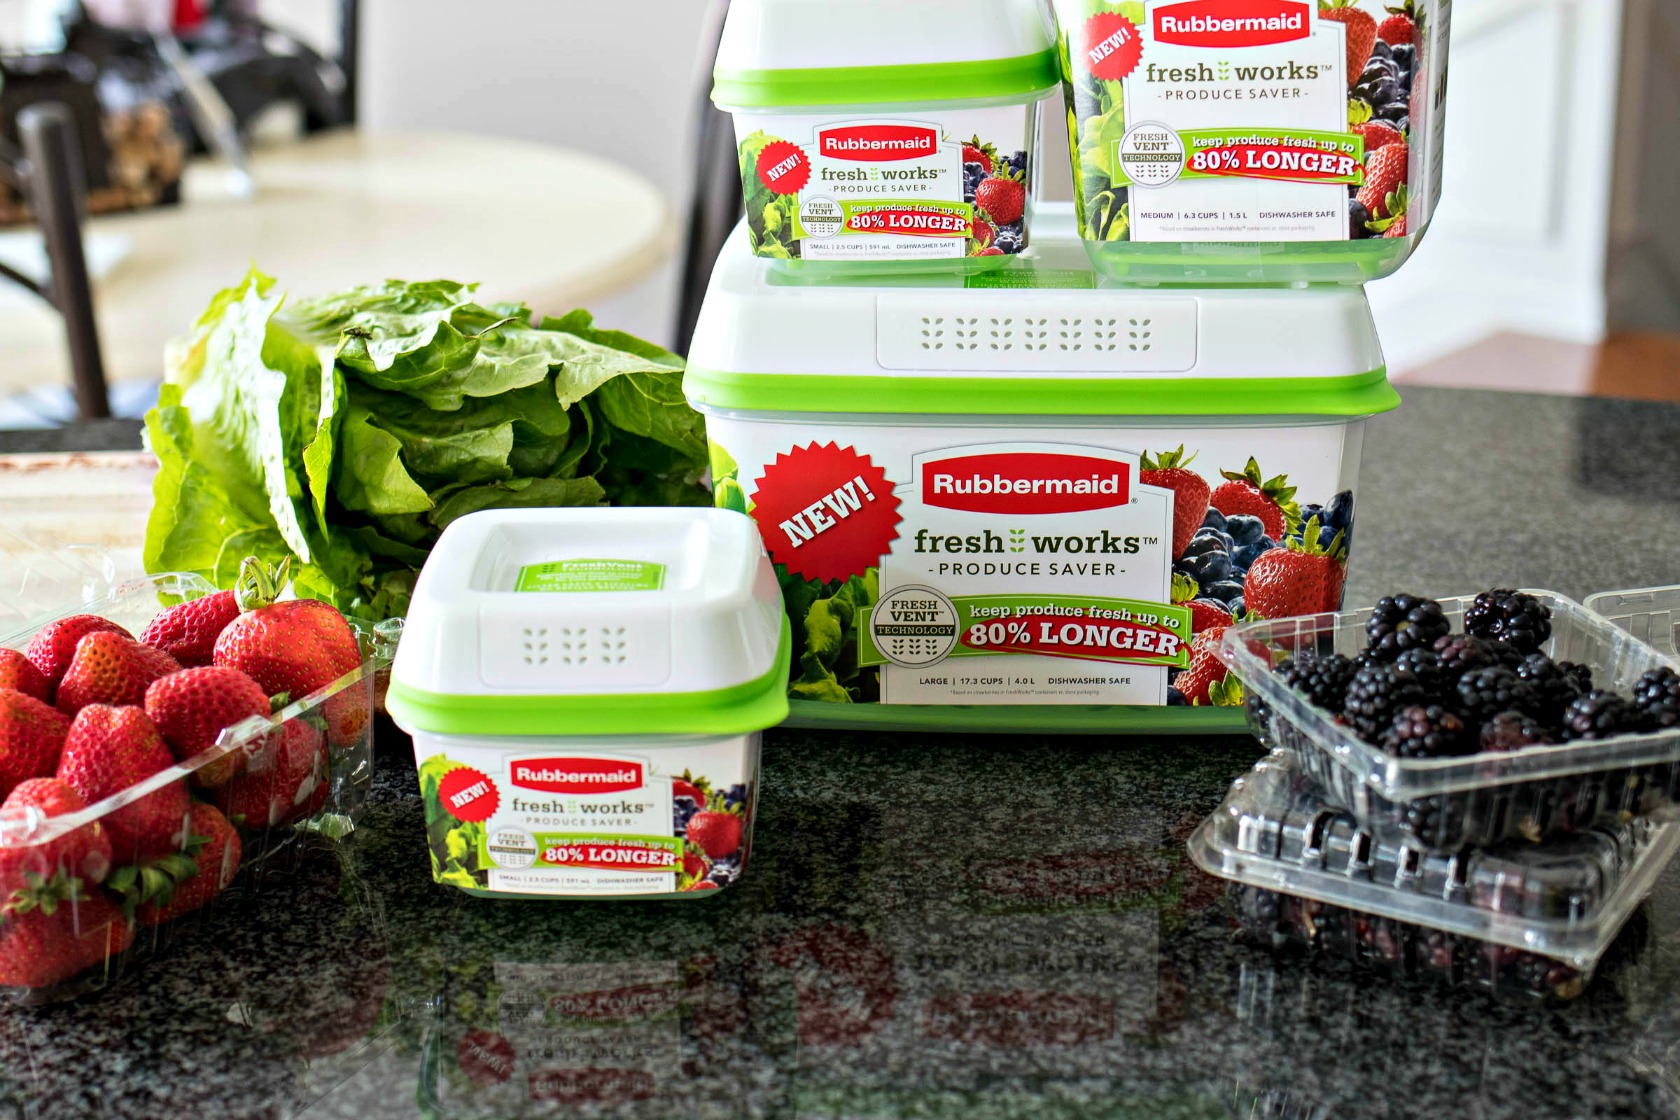 Freshworks produce savers in various sizes